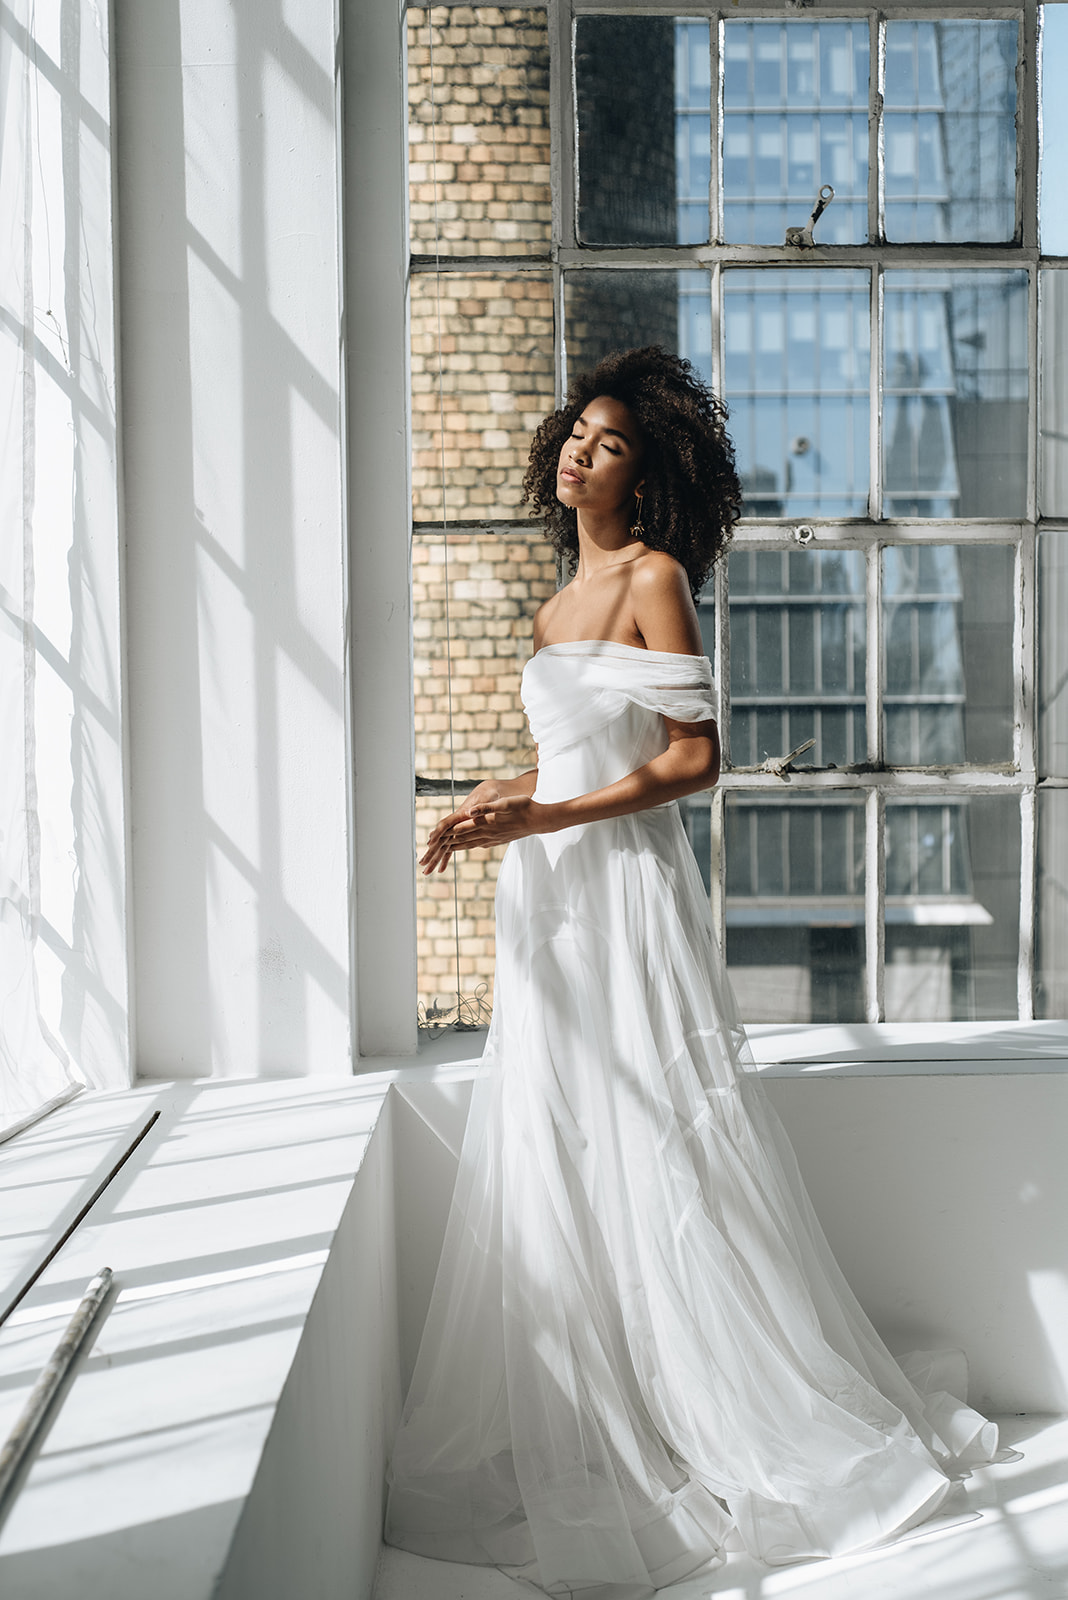 onefineday-editorial-georgiayoung-weddingdress